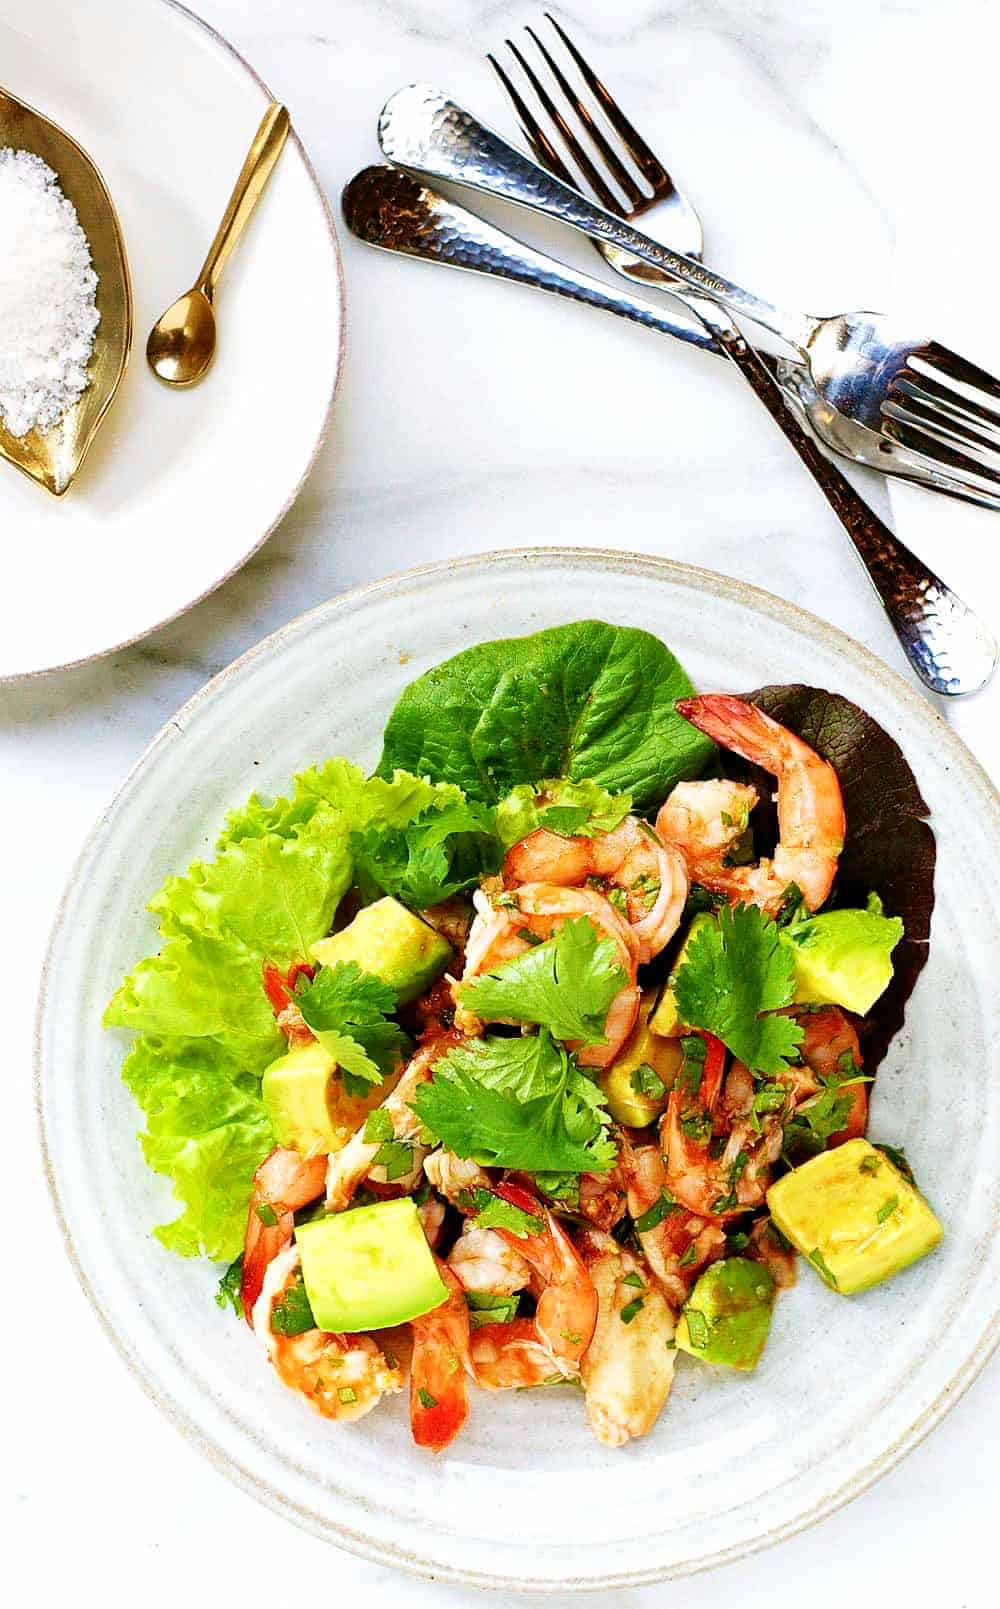 Shrimp-Crab-Avocado-Salad served on a ceramic plate